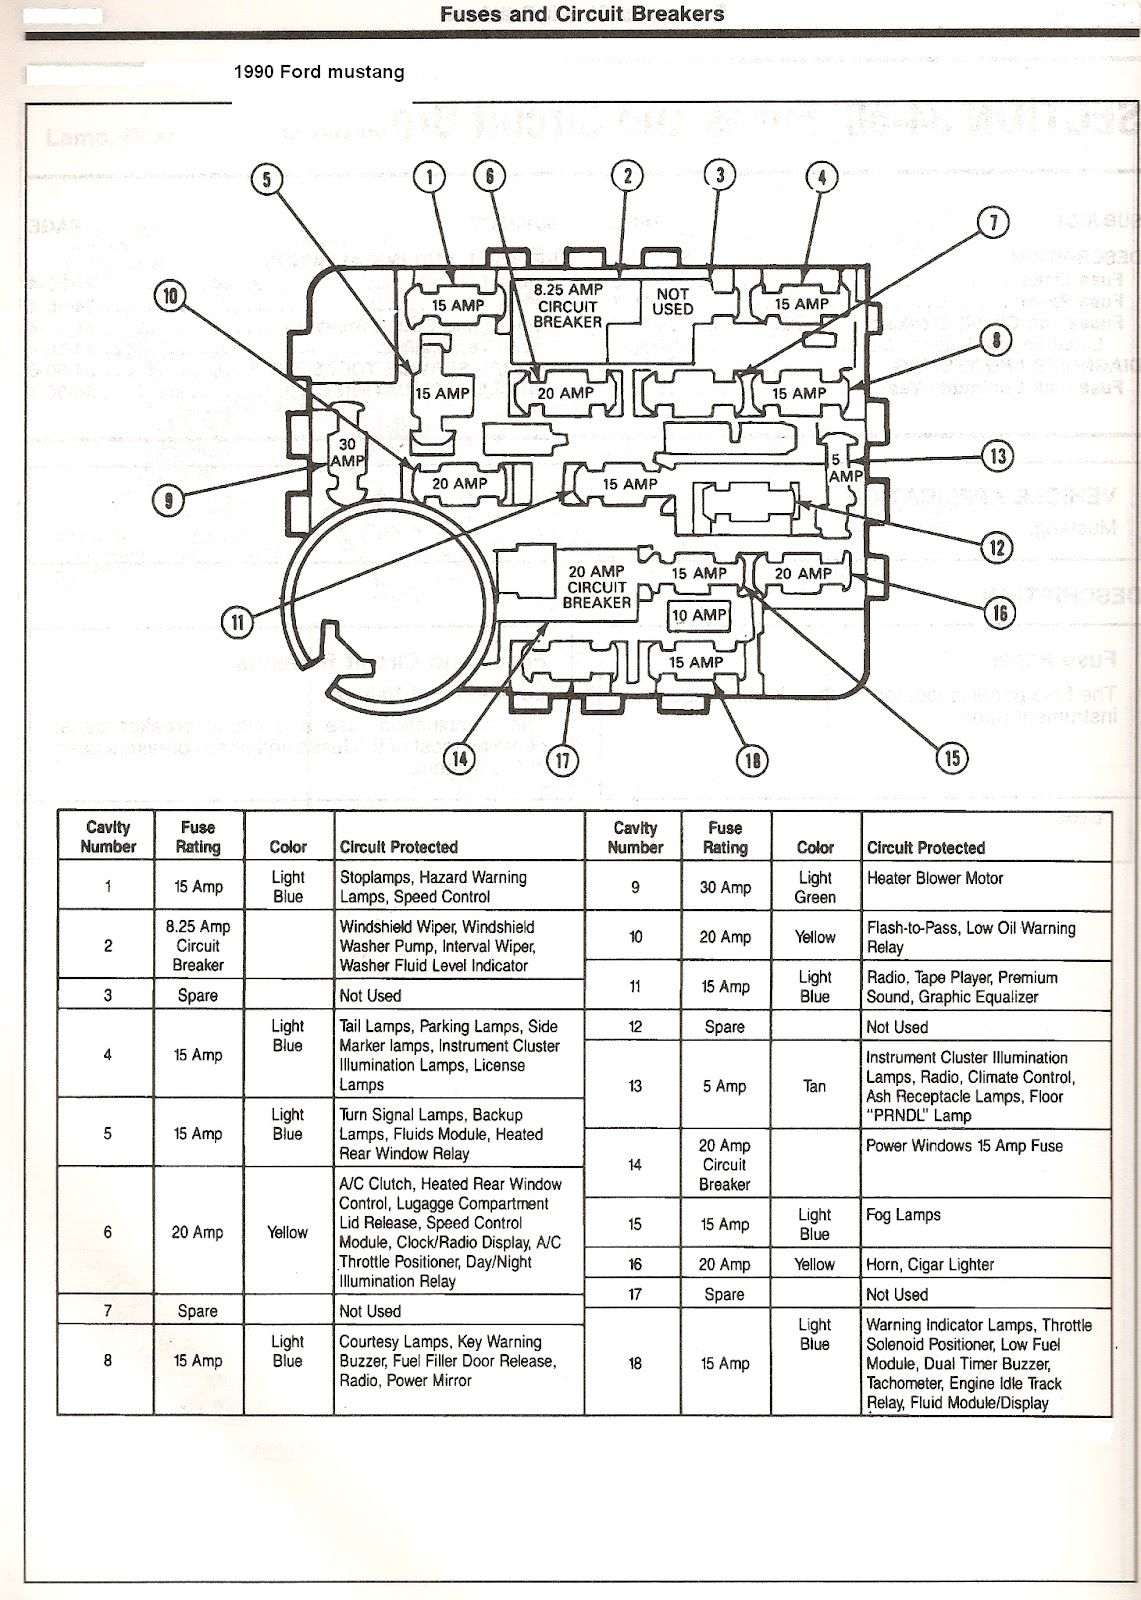 93 ford ranger fuse box - wiring diagram fat-note -  fat-note.agriturismoduemadonne.it  agriturismo due madonne